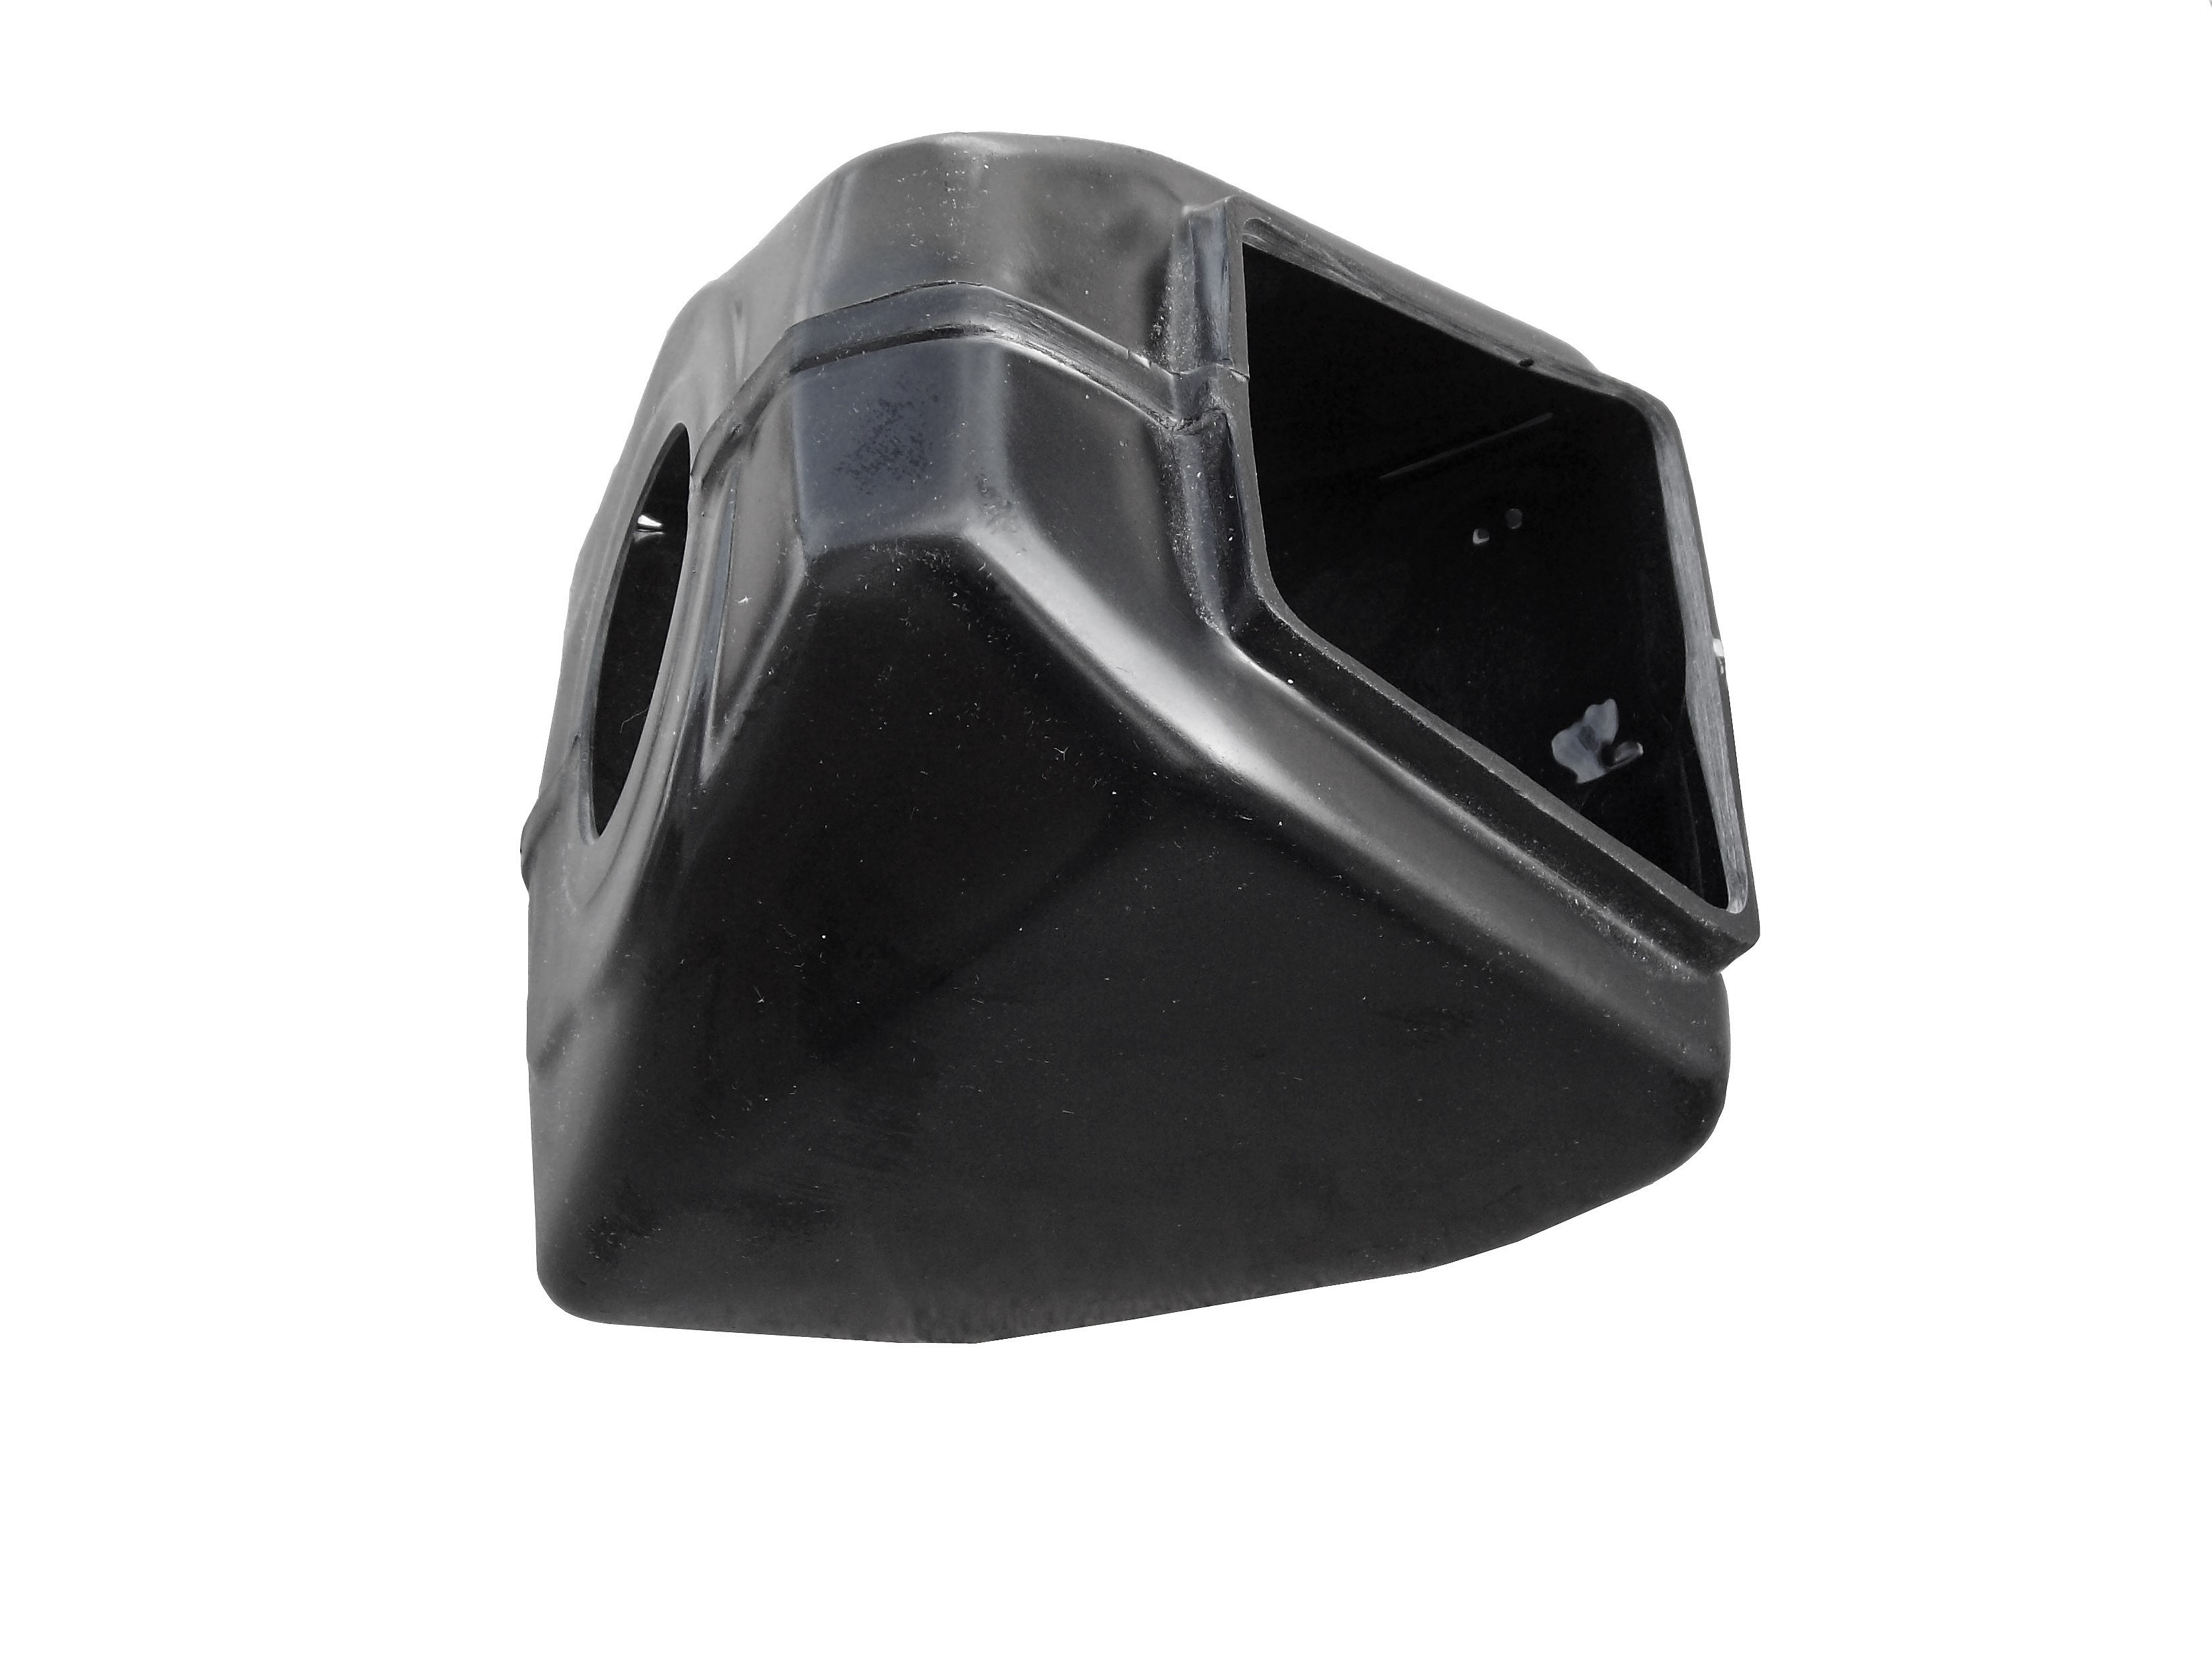 New Reproduction Polyurethane Airbox that fits the 1974.5 1975 Maico 250 400